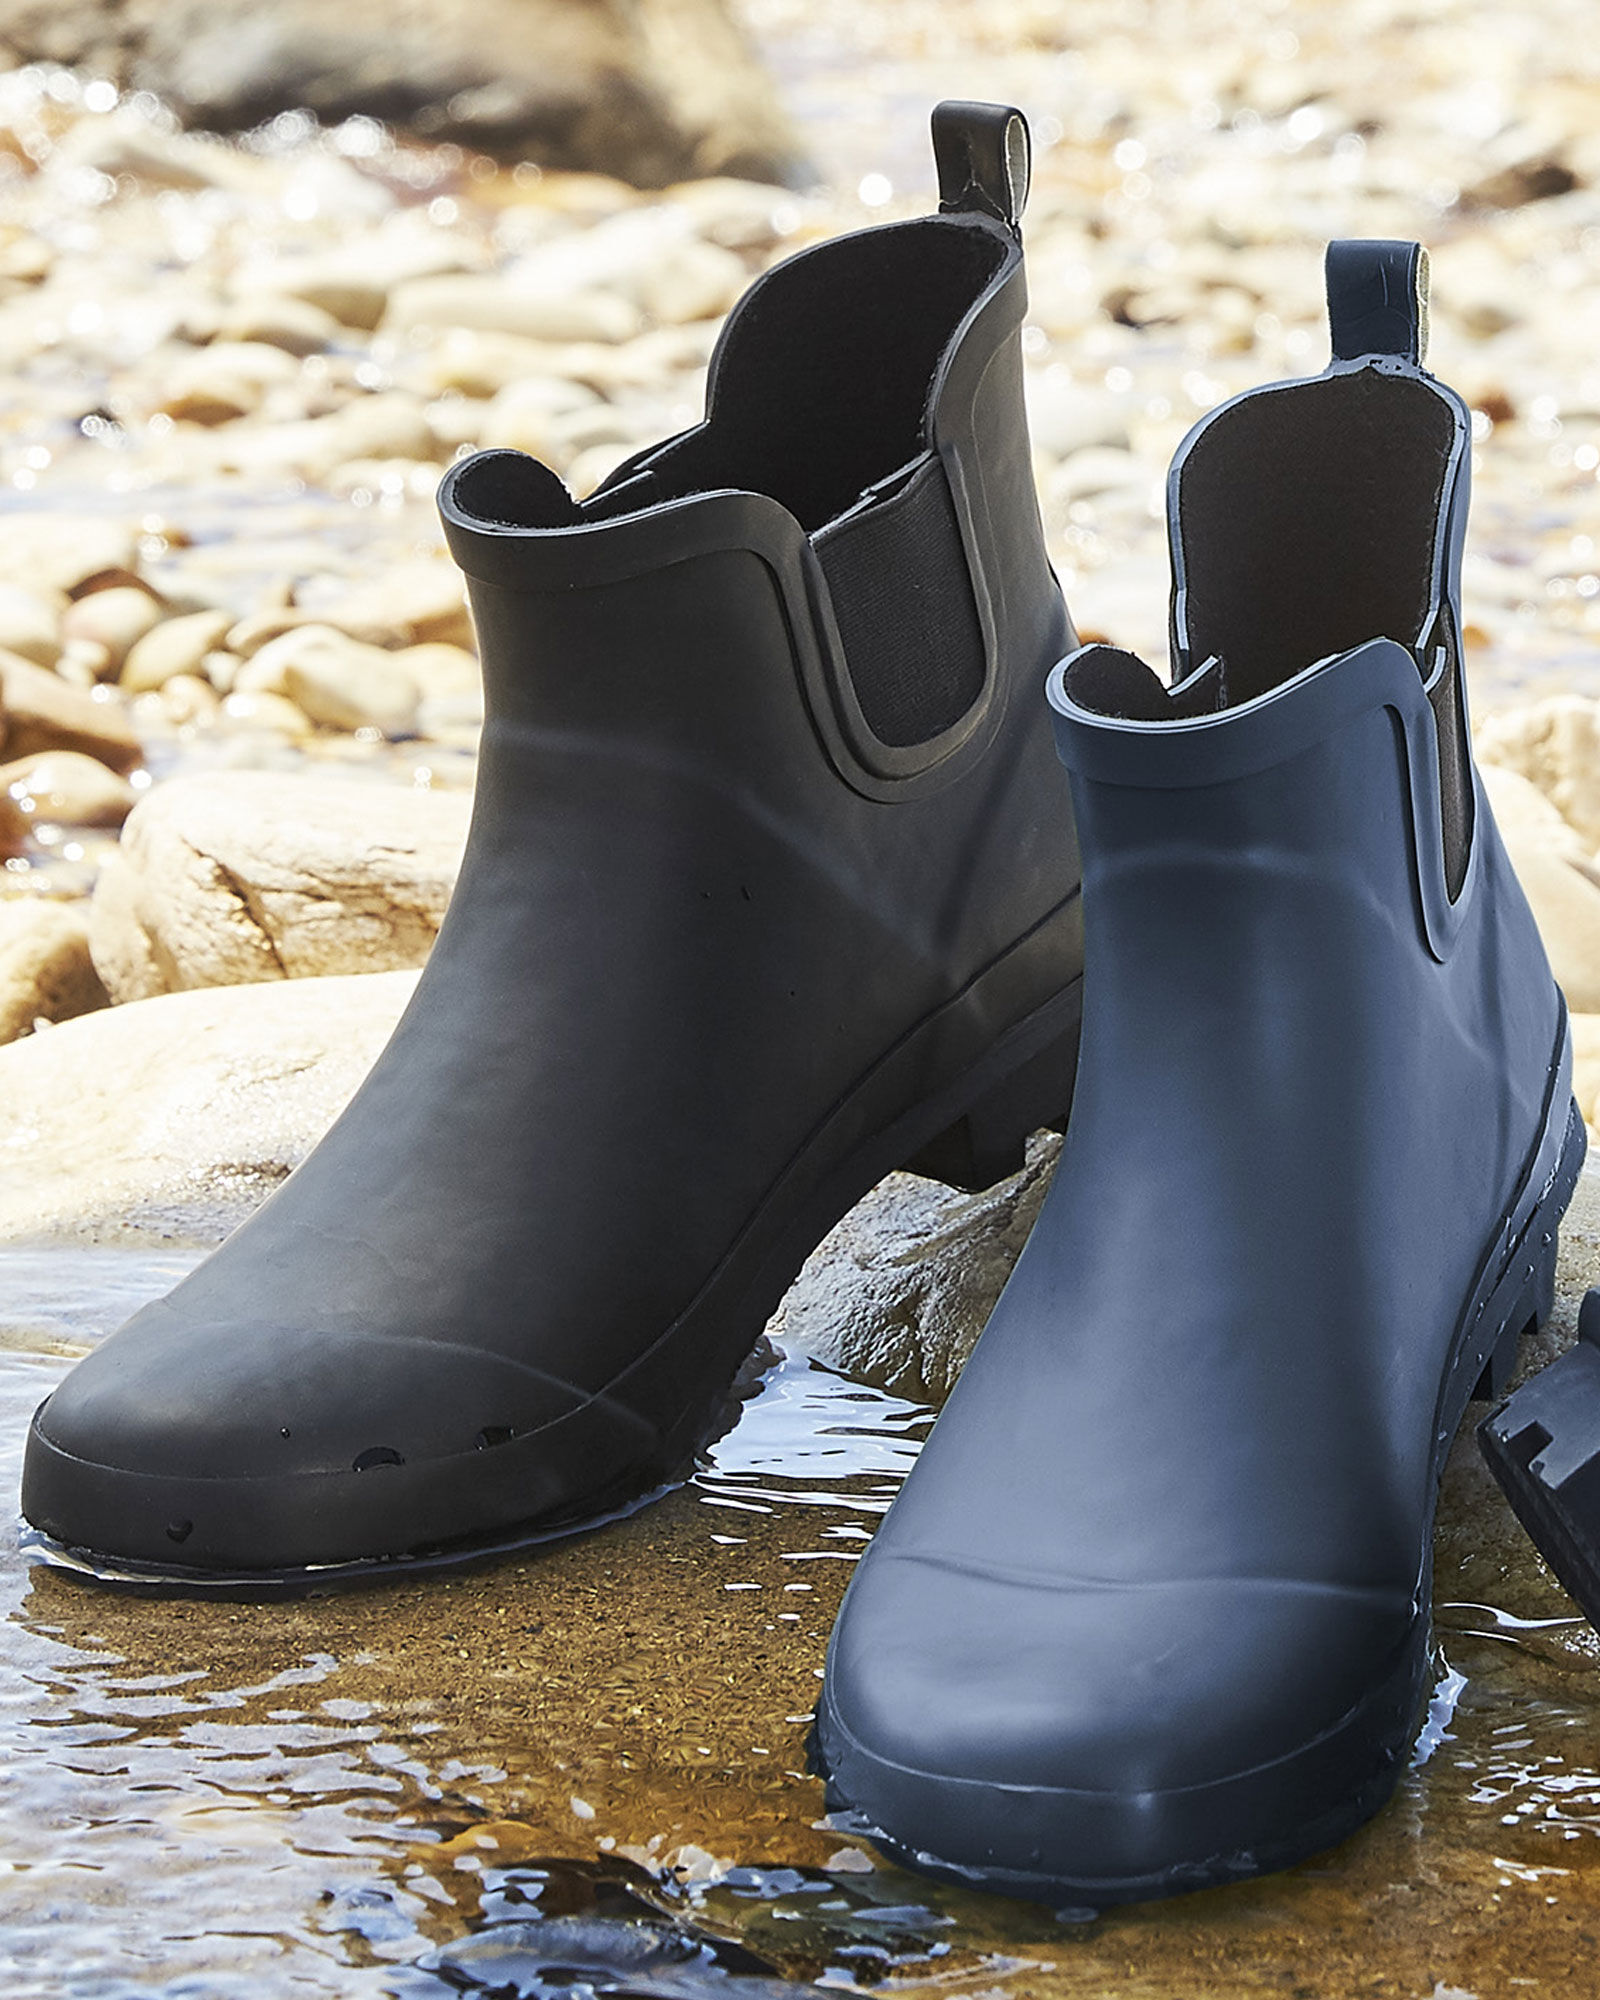 Ankle Wellington Boots at Cotton Traders